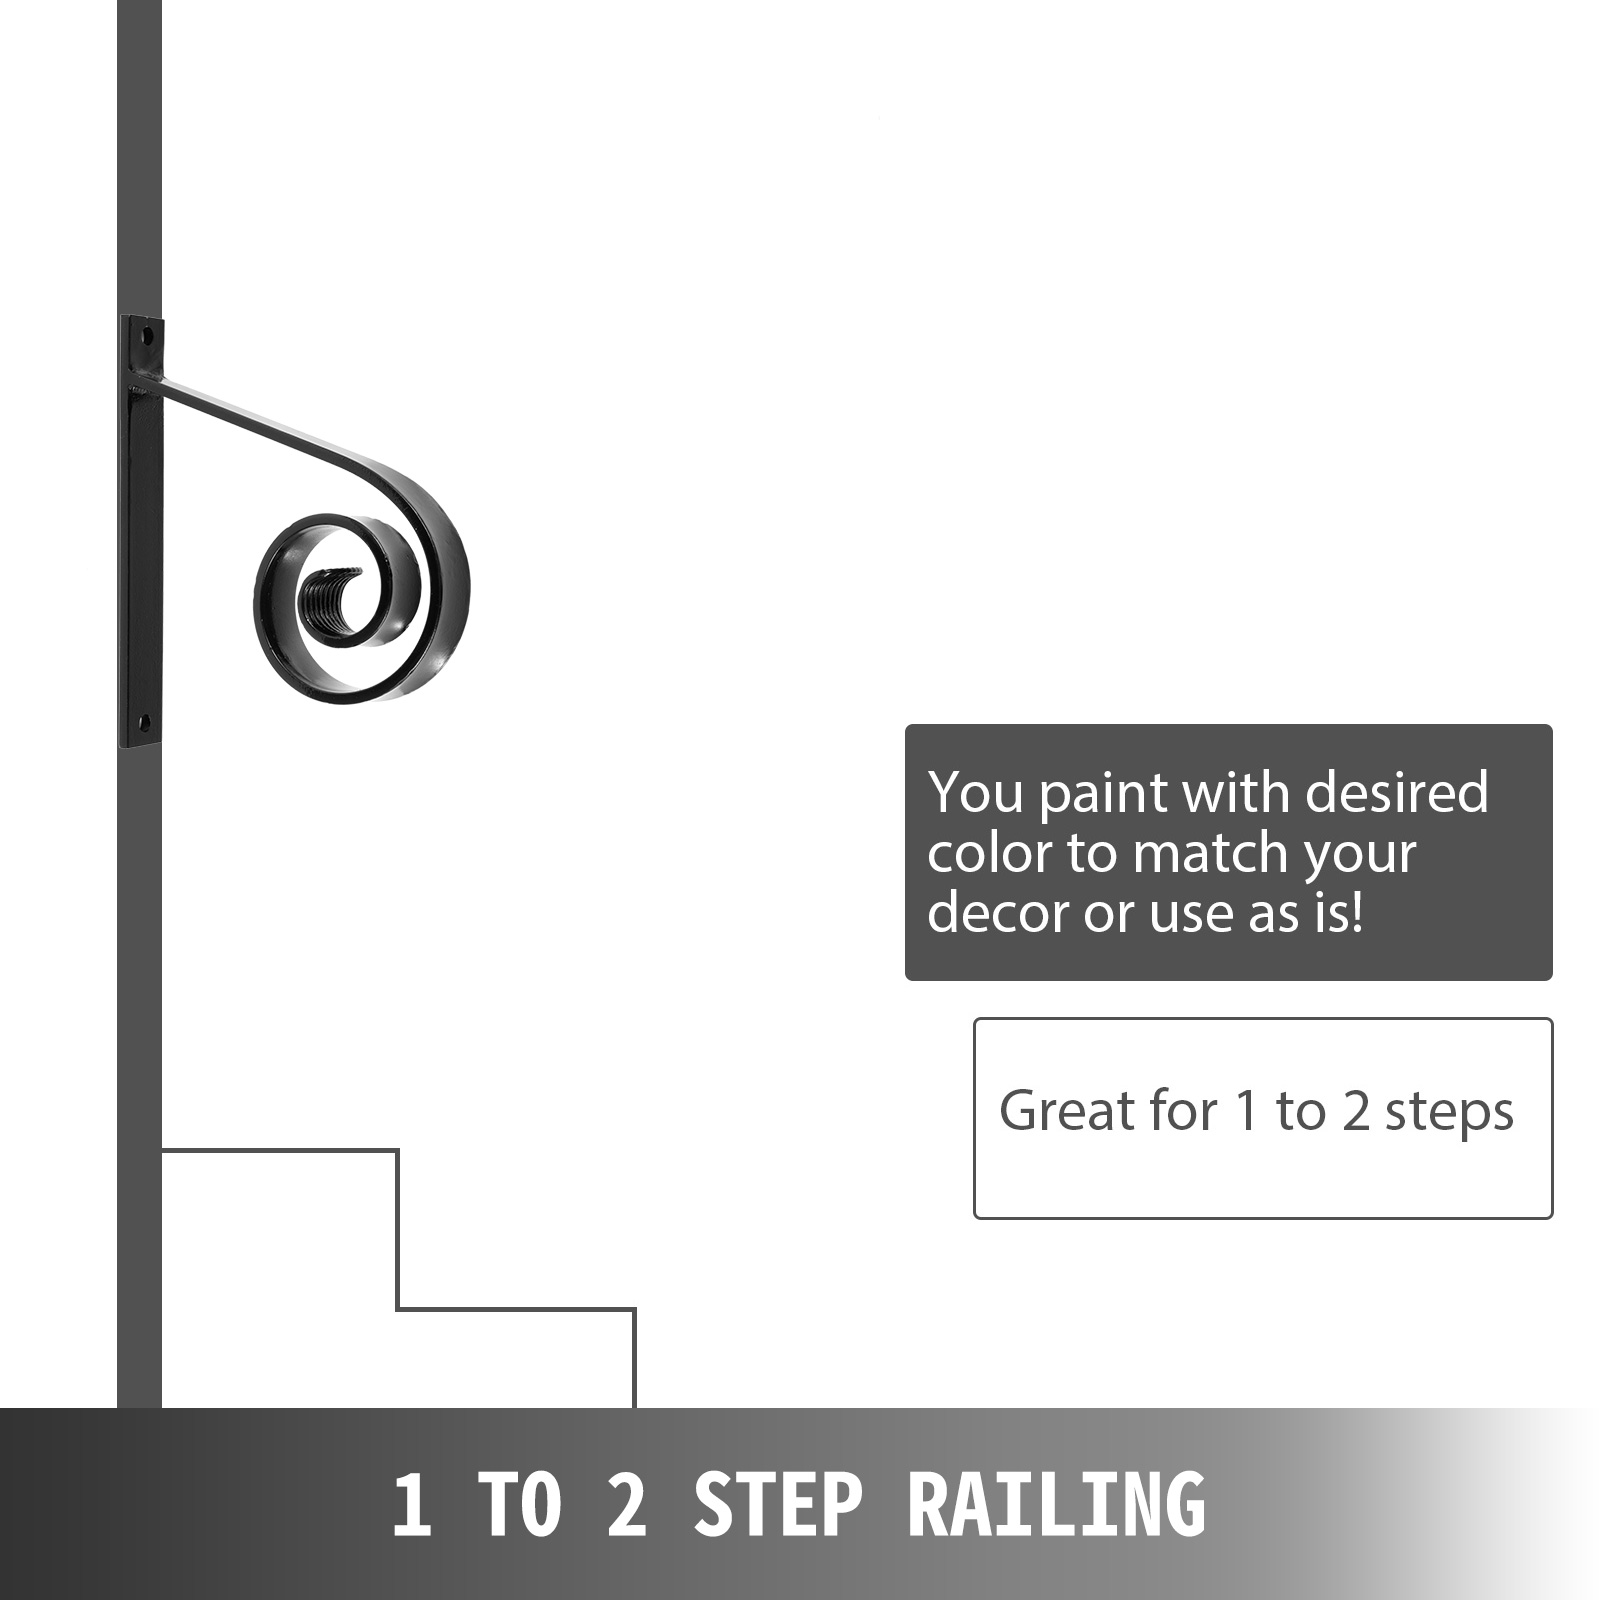 Handrails-for-Outdoor-Step-Wrought-Iron-Handrail-20-034-Length-Porch-Deck-Railing thumbnail 123